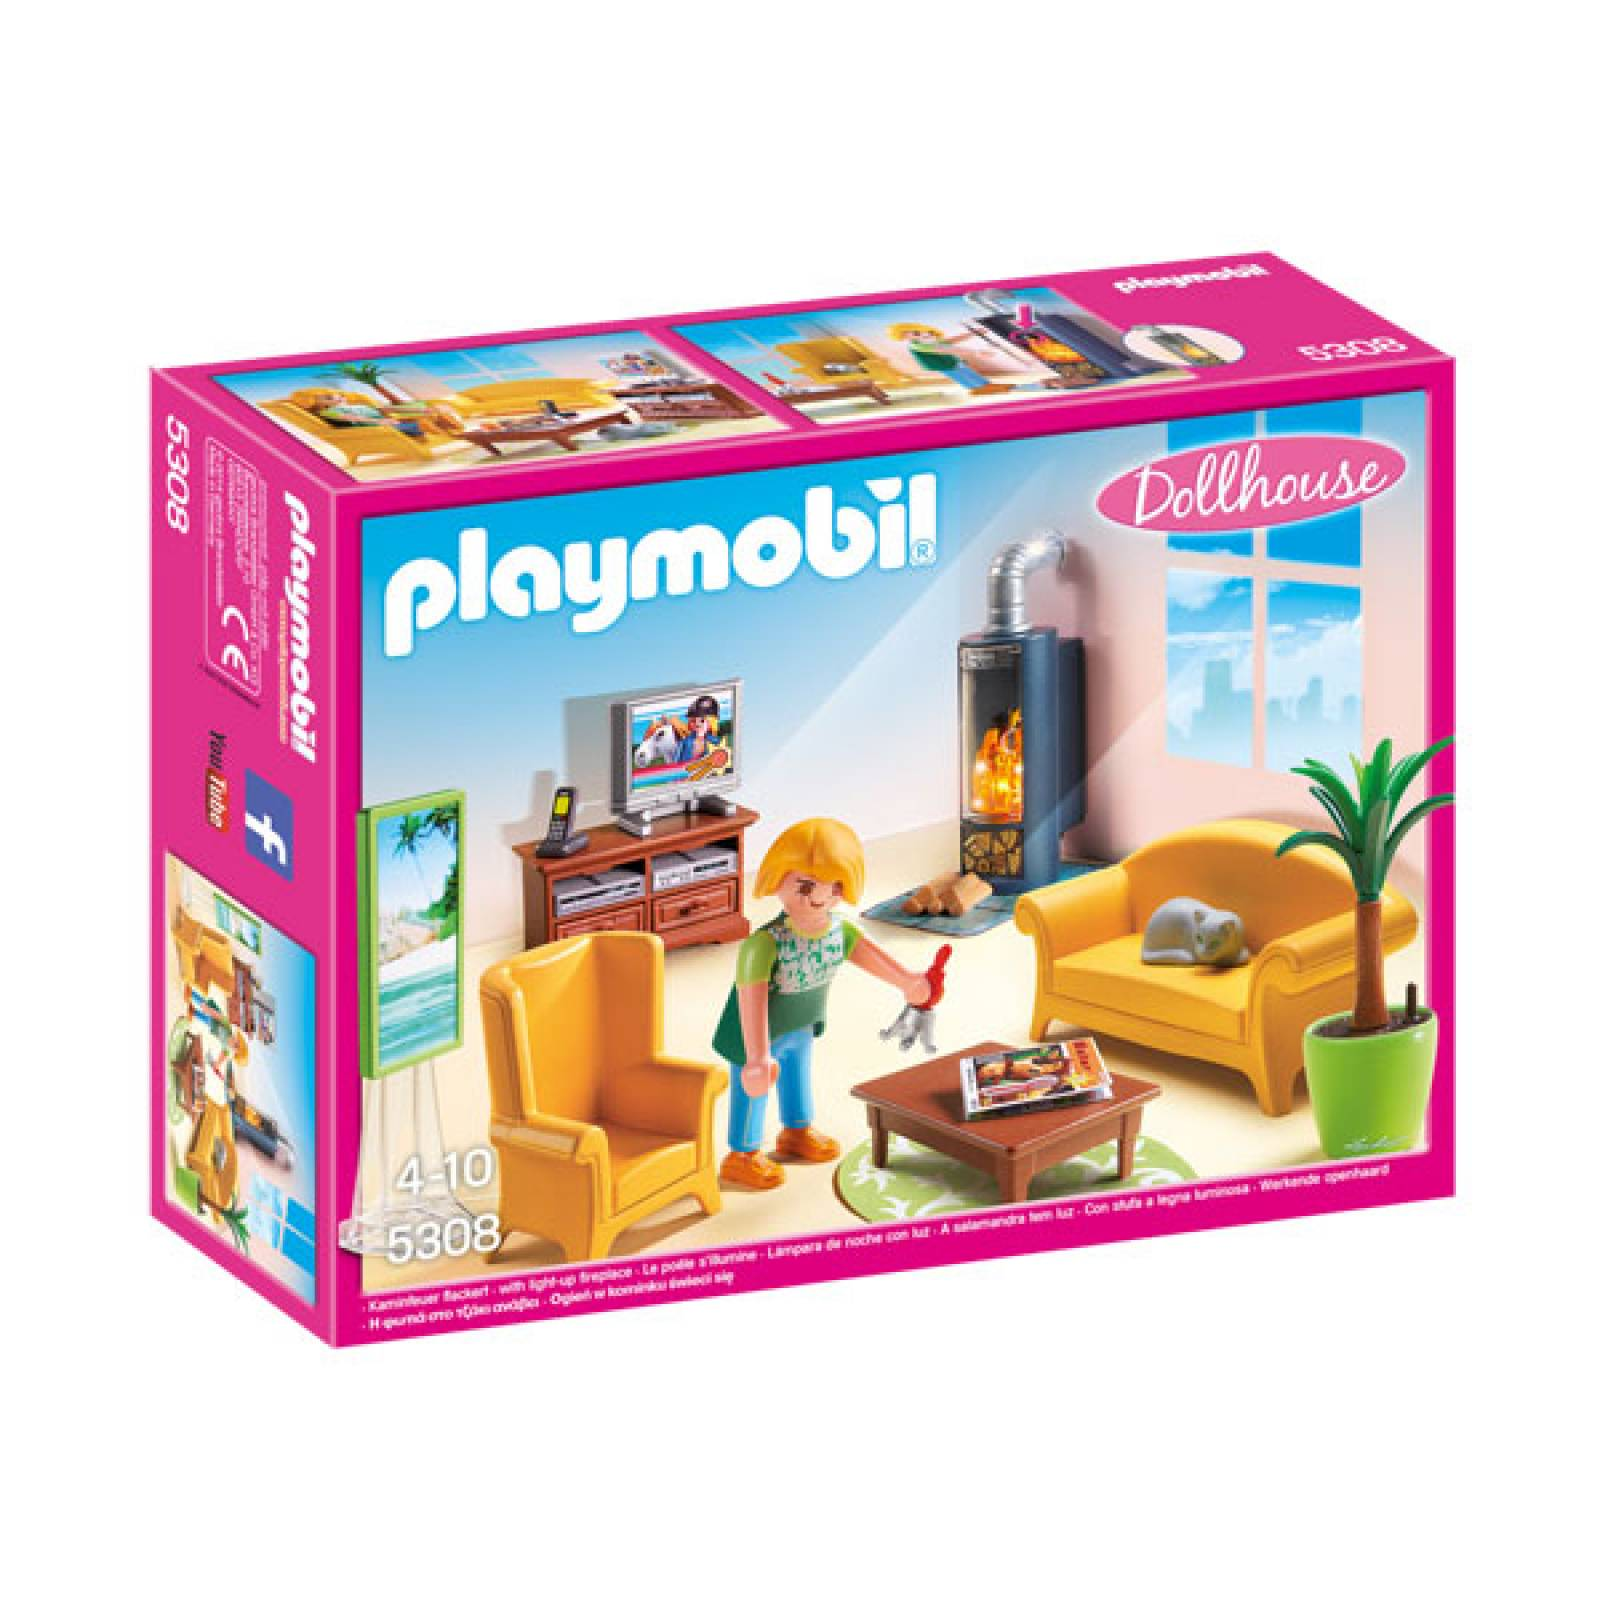 Living Room With Fireplace Playmobil 5308 thumbnails